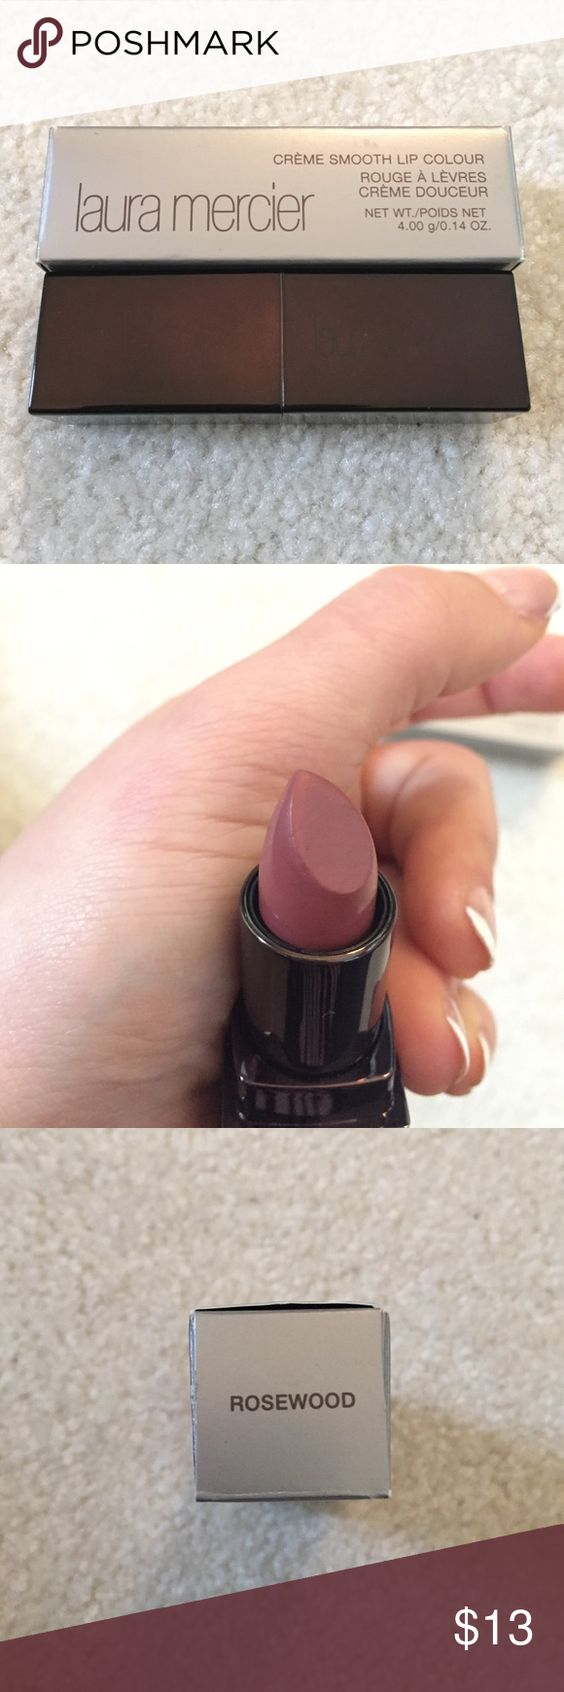 Laura Mercier Lipstick Rosewood Laura Mercier lipstick in Rosewood. Swatched twice. Box included. Laura Mercier Makeup Lipstick